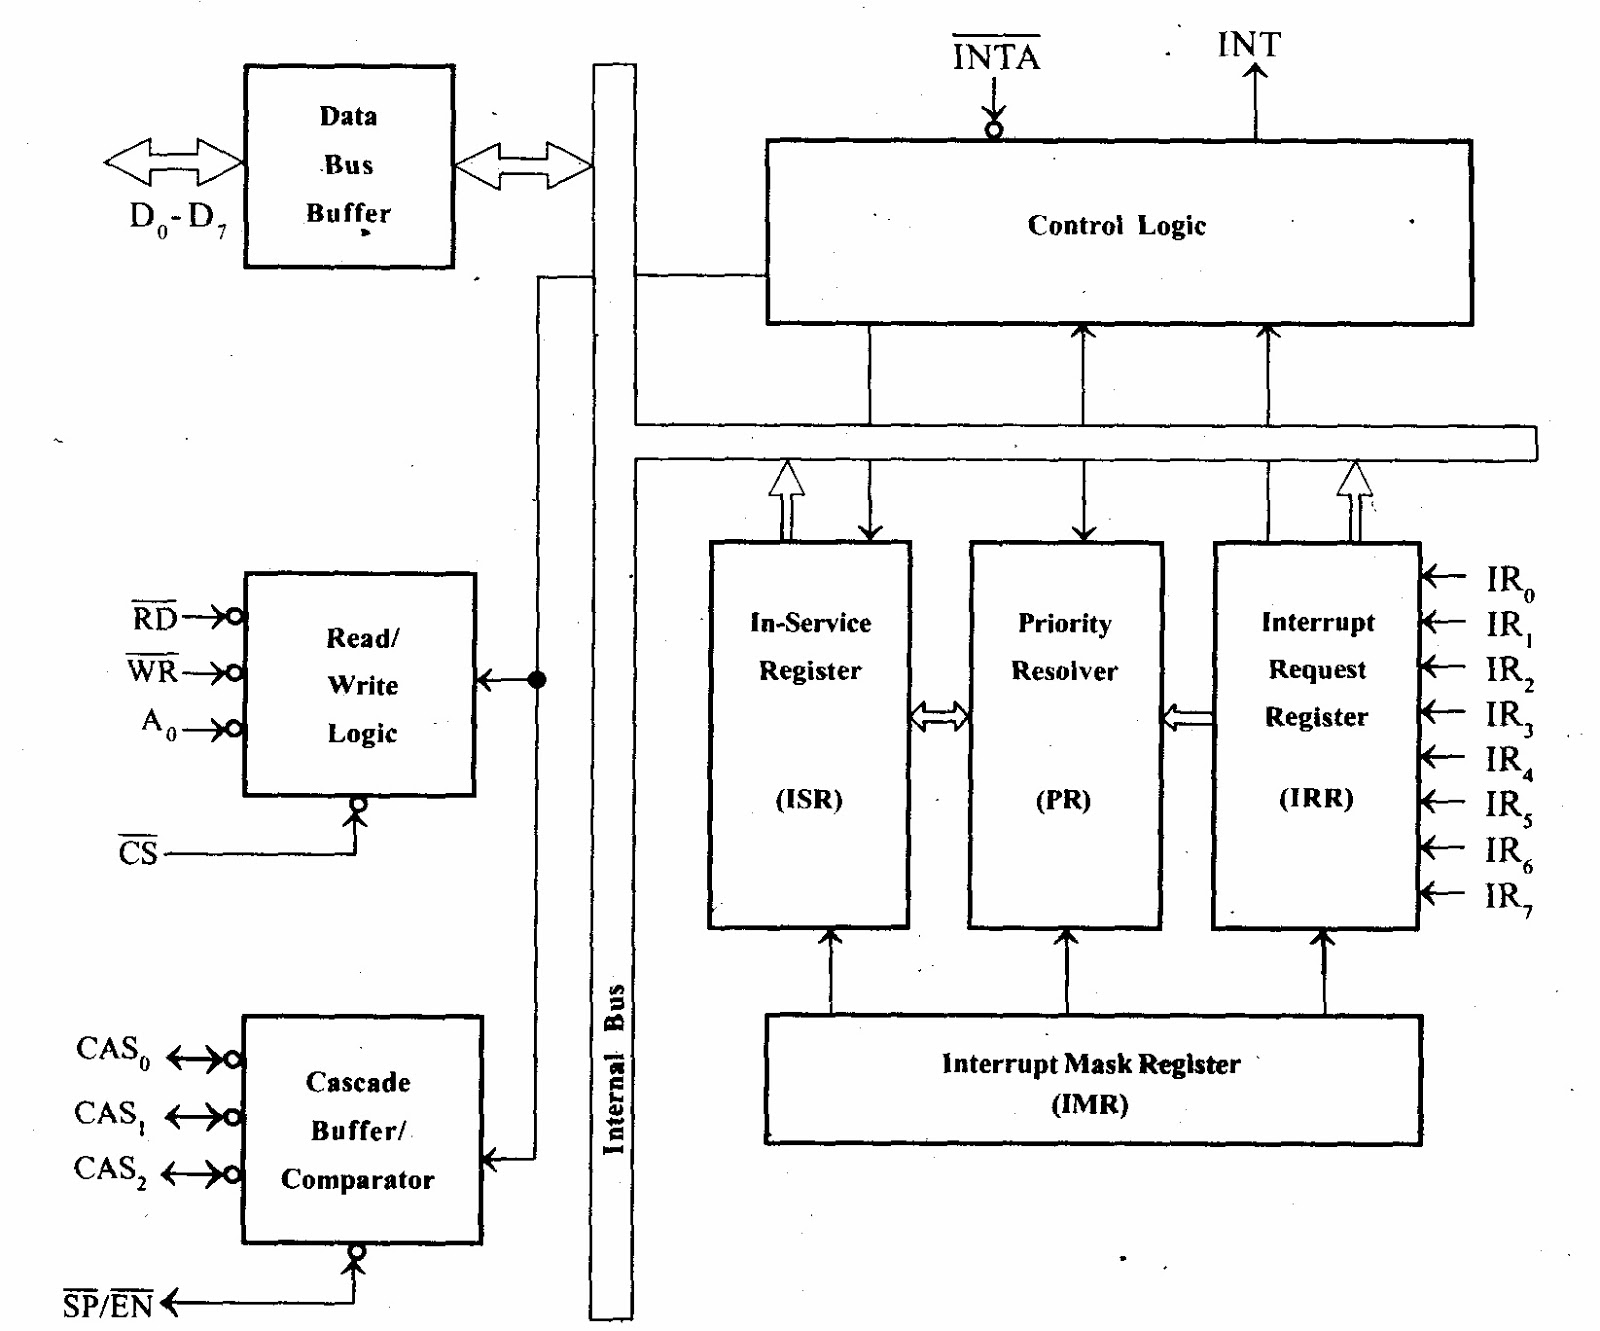 A Media To Get All Datas In Electrical Science Features Logic Block Diagram Functional Of 8259 Processor